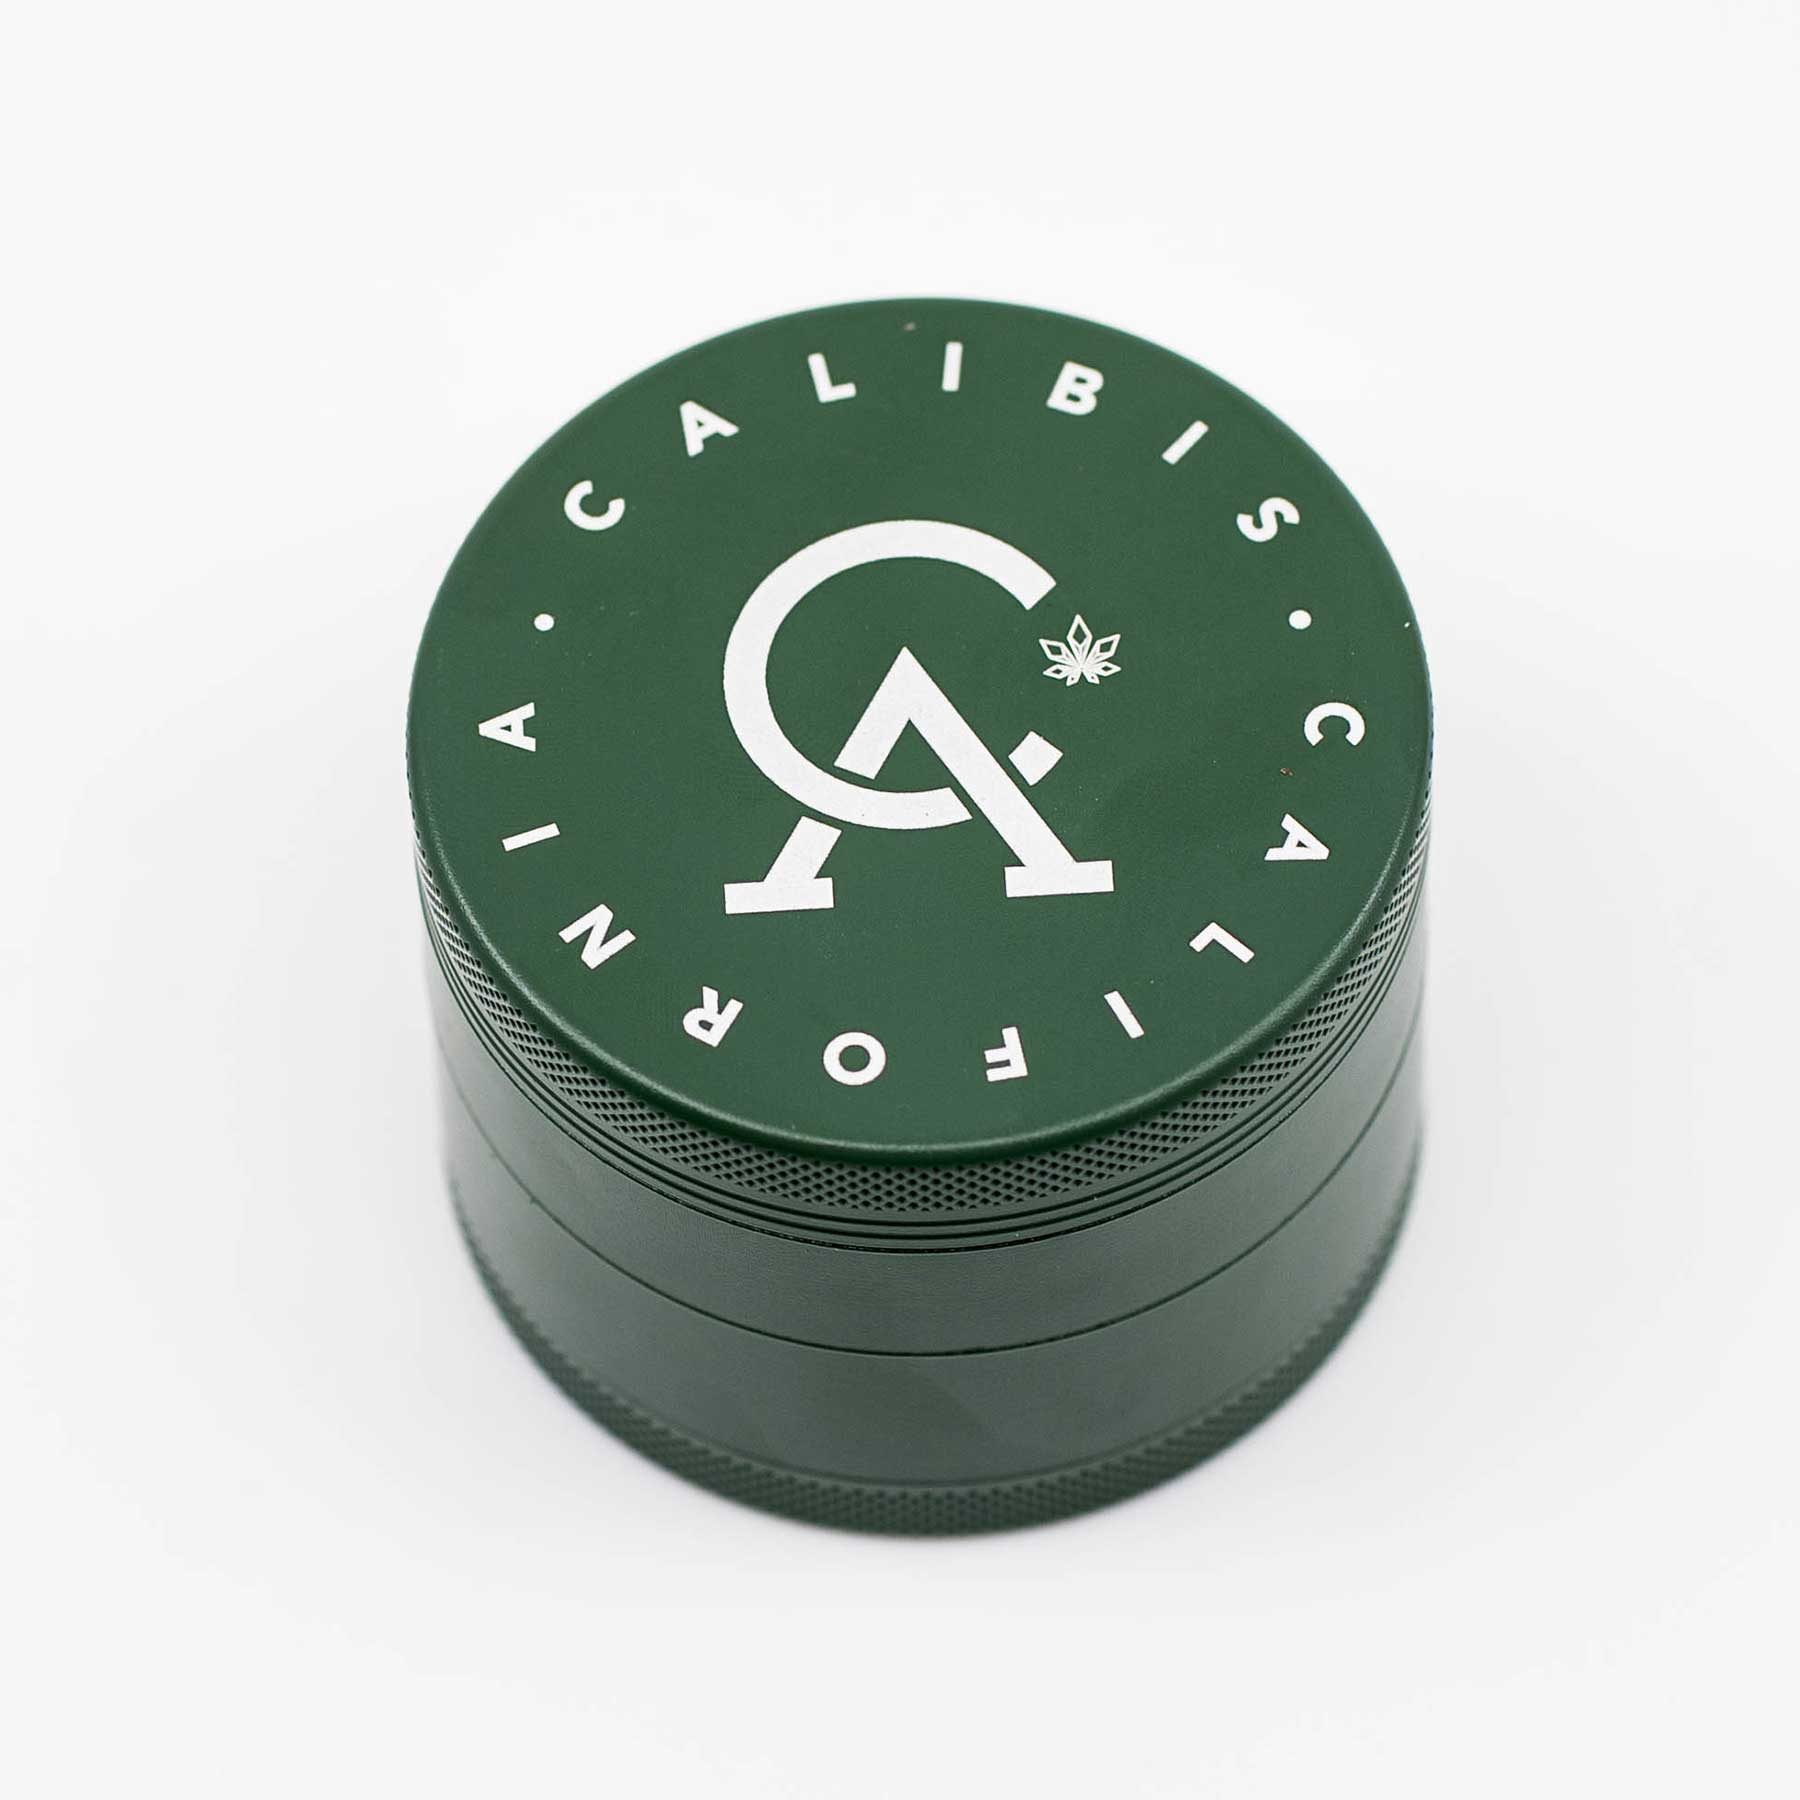 Copy of The Cali Ceramic Grinder by Calibis Clothing